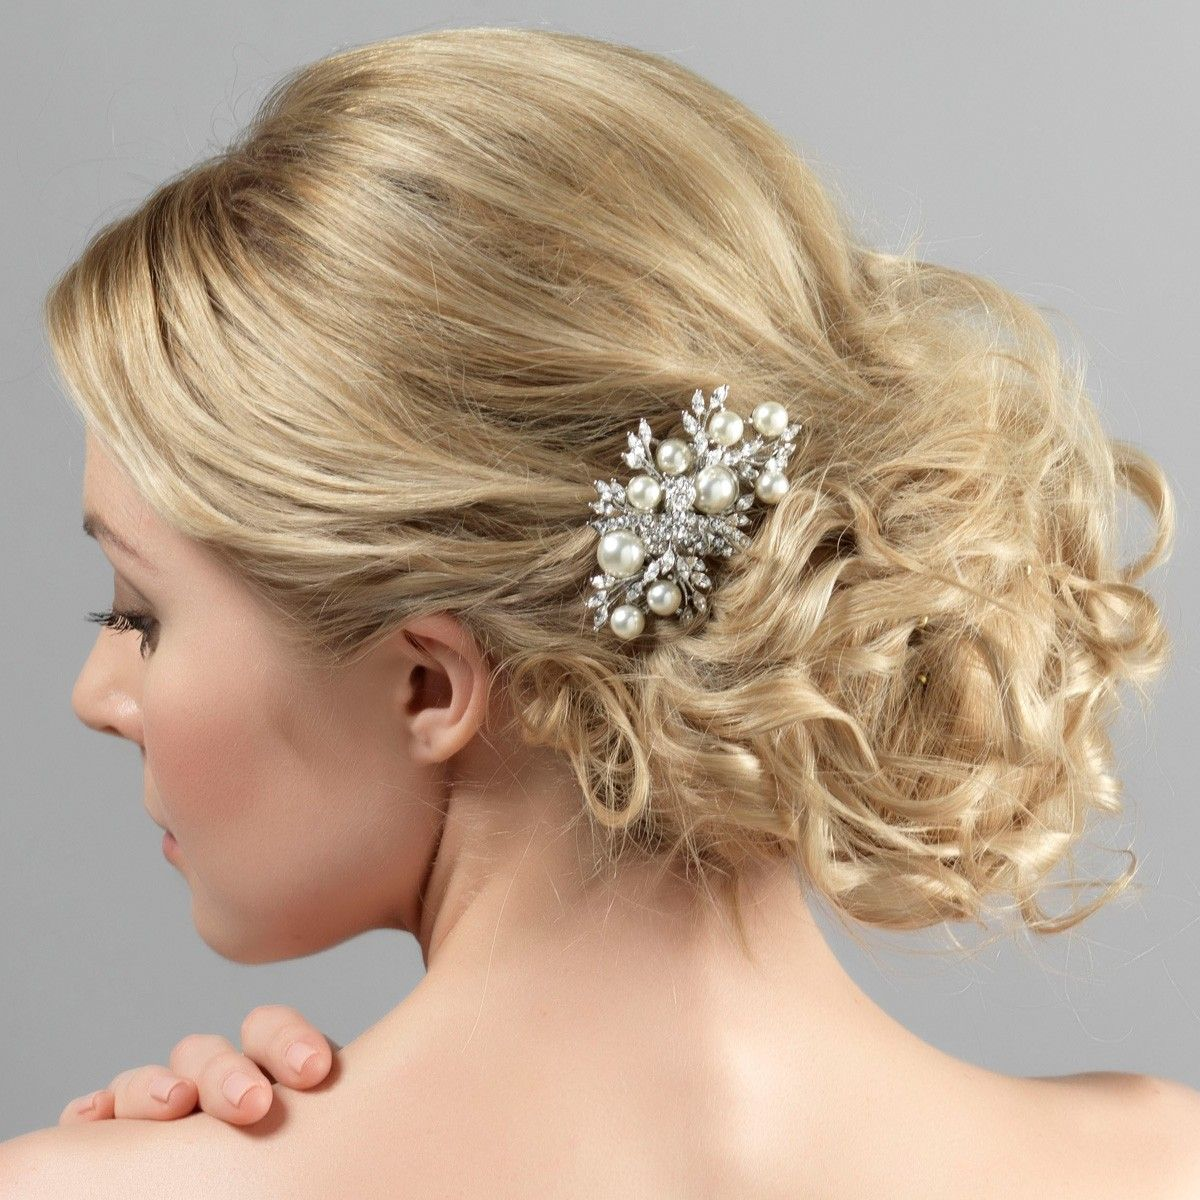 the enchanting pearl hair comb by glitzy secrets is the perfect pearl wedding hair accessory for a bride with a pearl theme that is vintage inspired